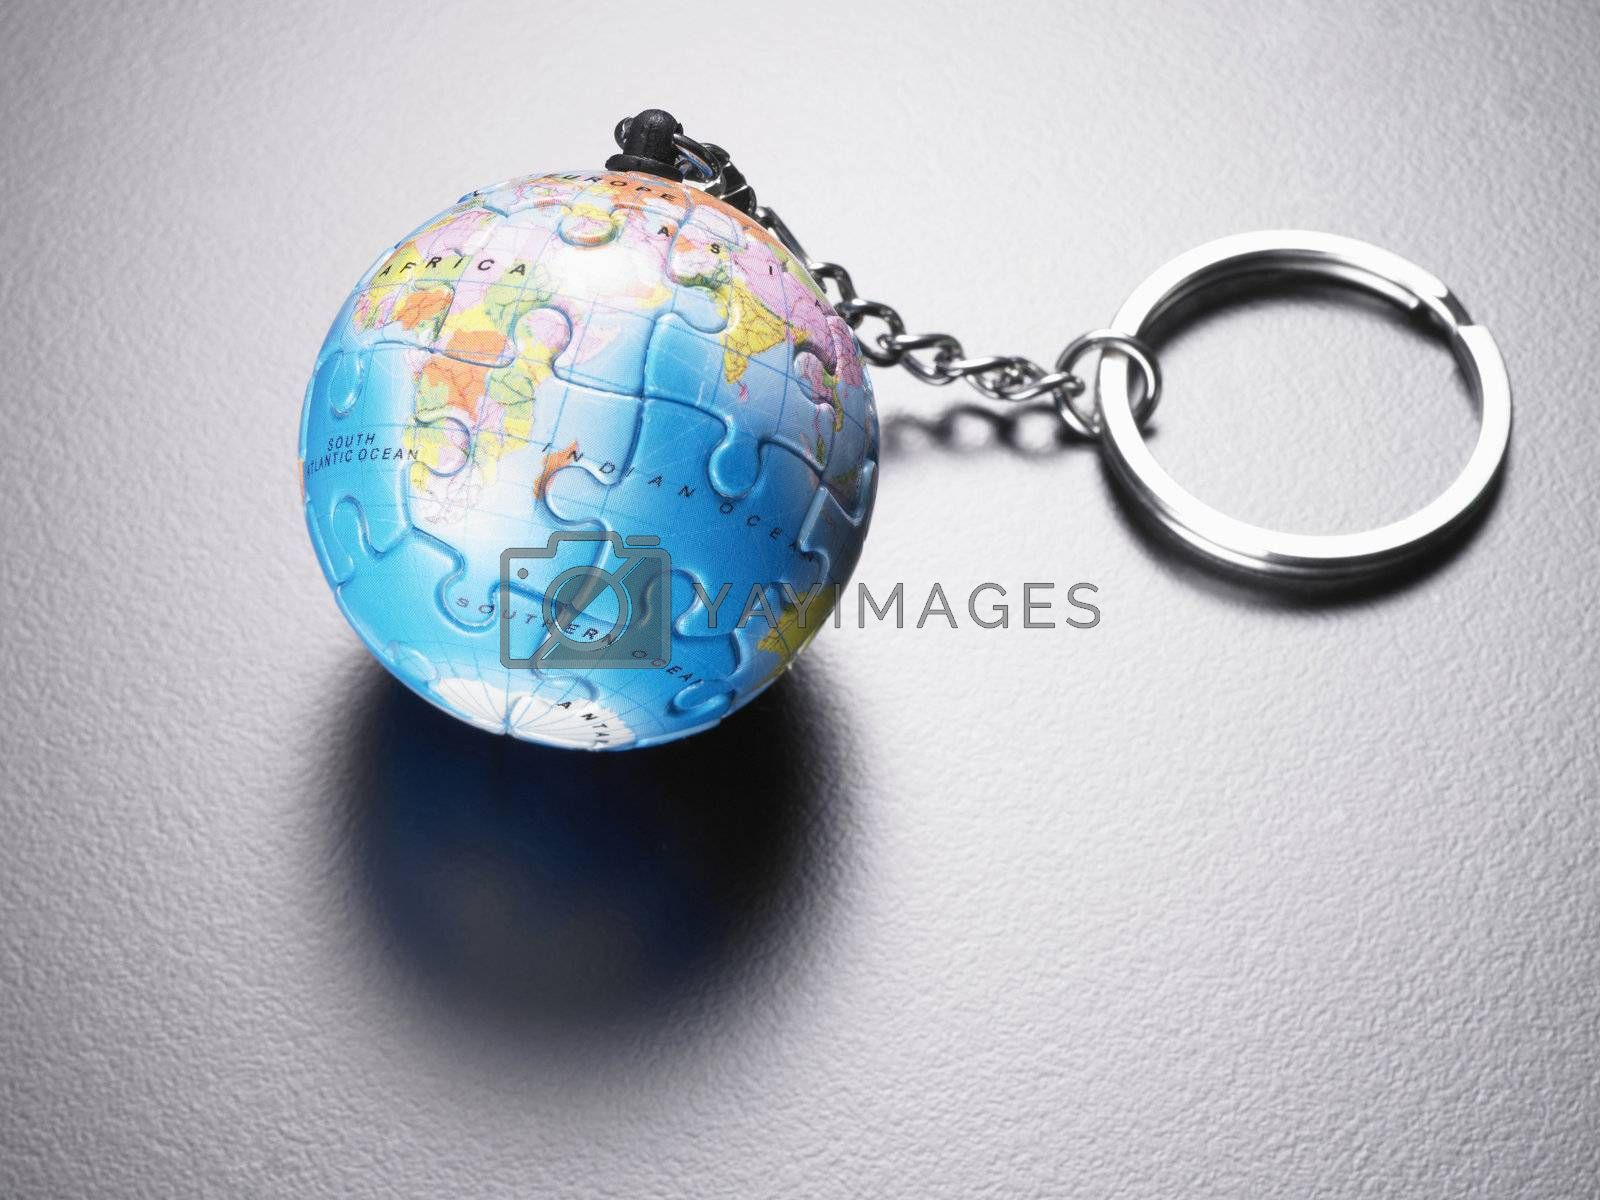 Jigsaw puzzle sphere on keychain.